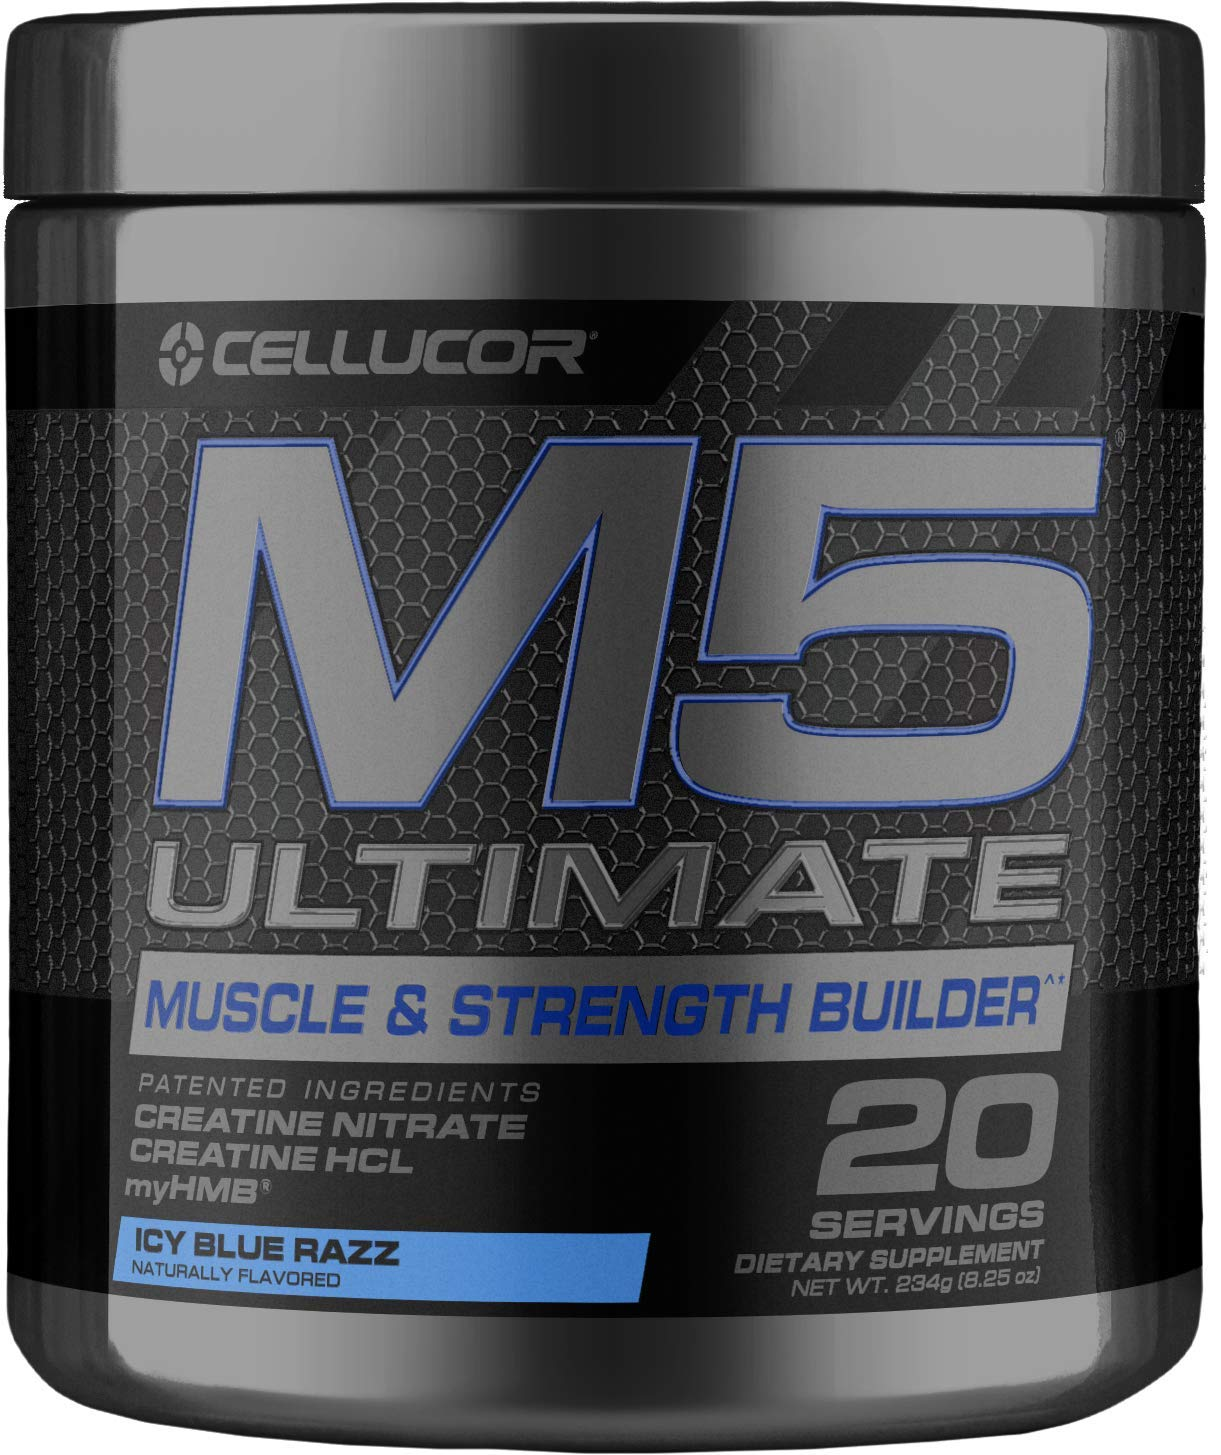 Cellucor M5 Ultimate Post Workout Powder ICY Blue Razz | Muscle & Strength Building Supplement | Creatine Monohydrate + Creatine Nitrate + Creatine HCL + HMB | 20 Servings by Cellucor